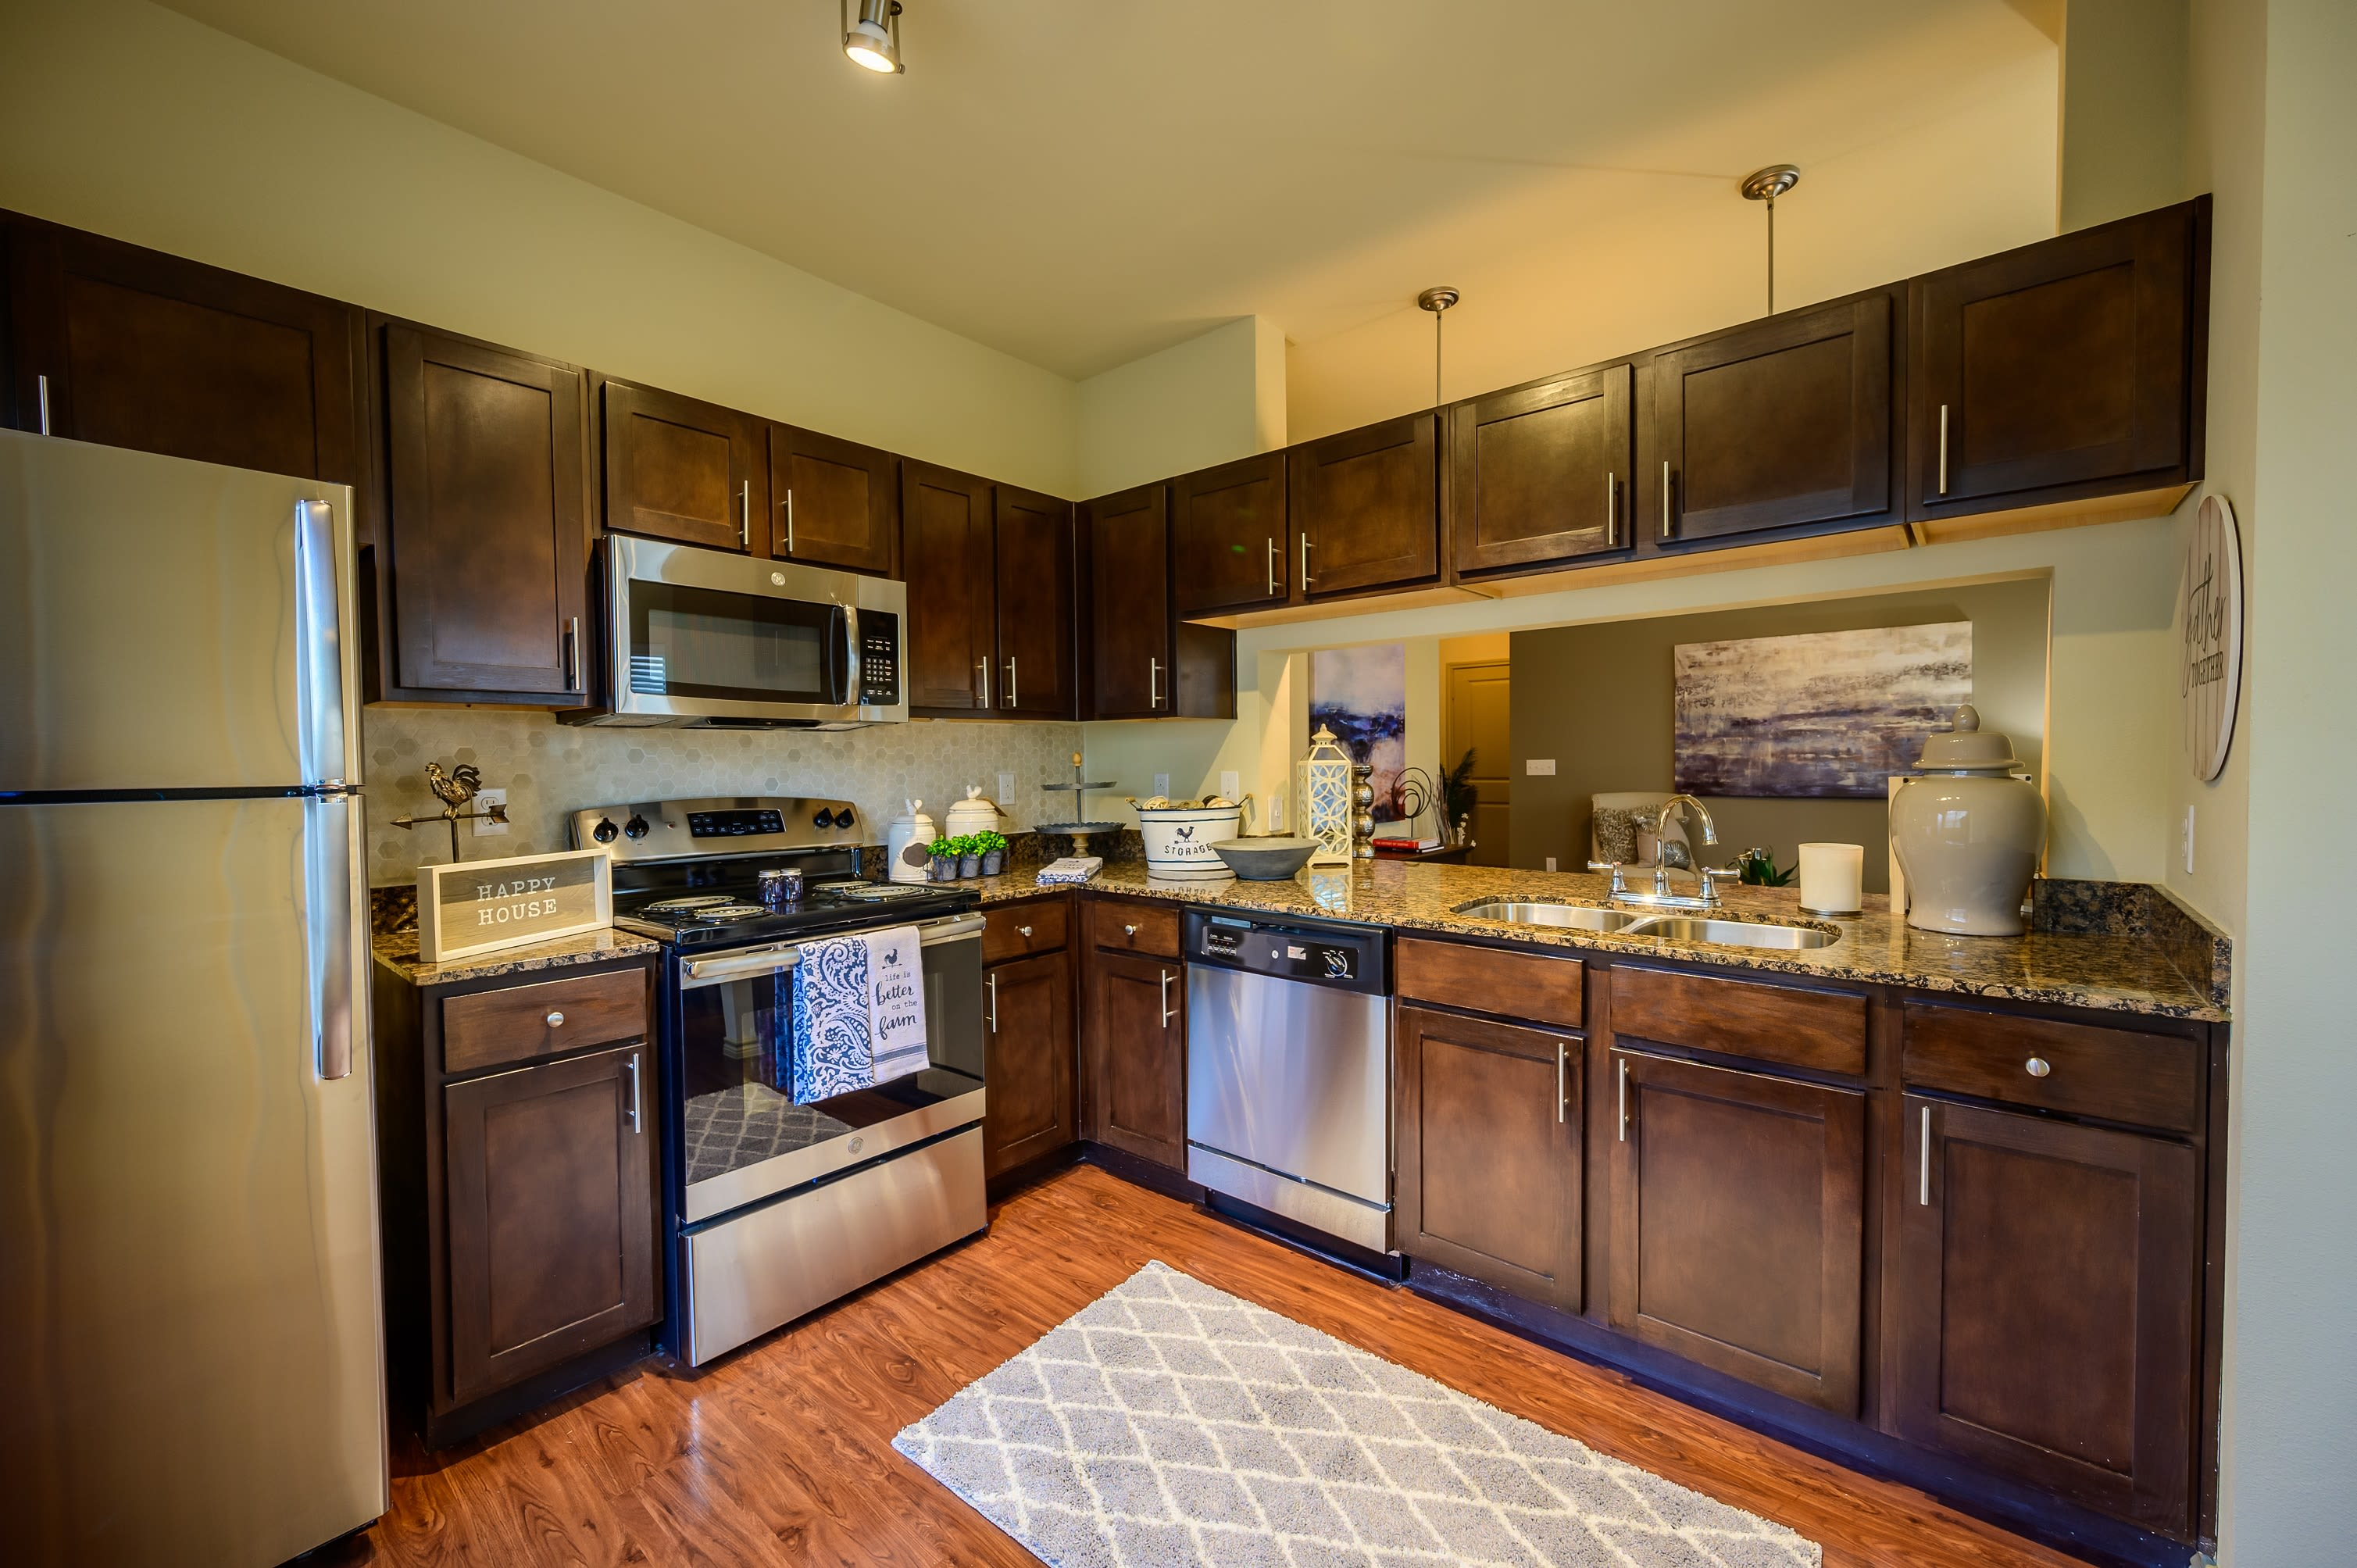 Dark wood cabinetry in model kitchen at Pecan Springs Apartments